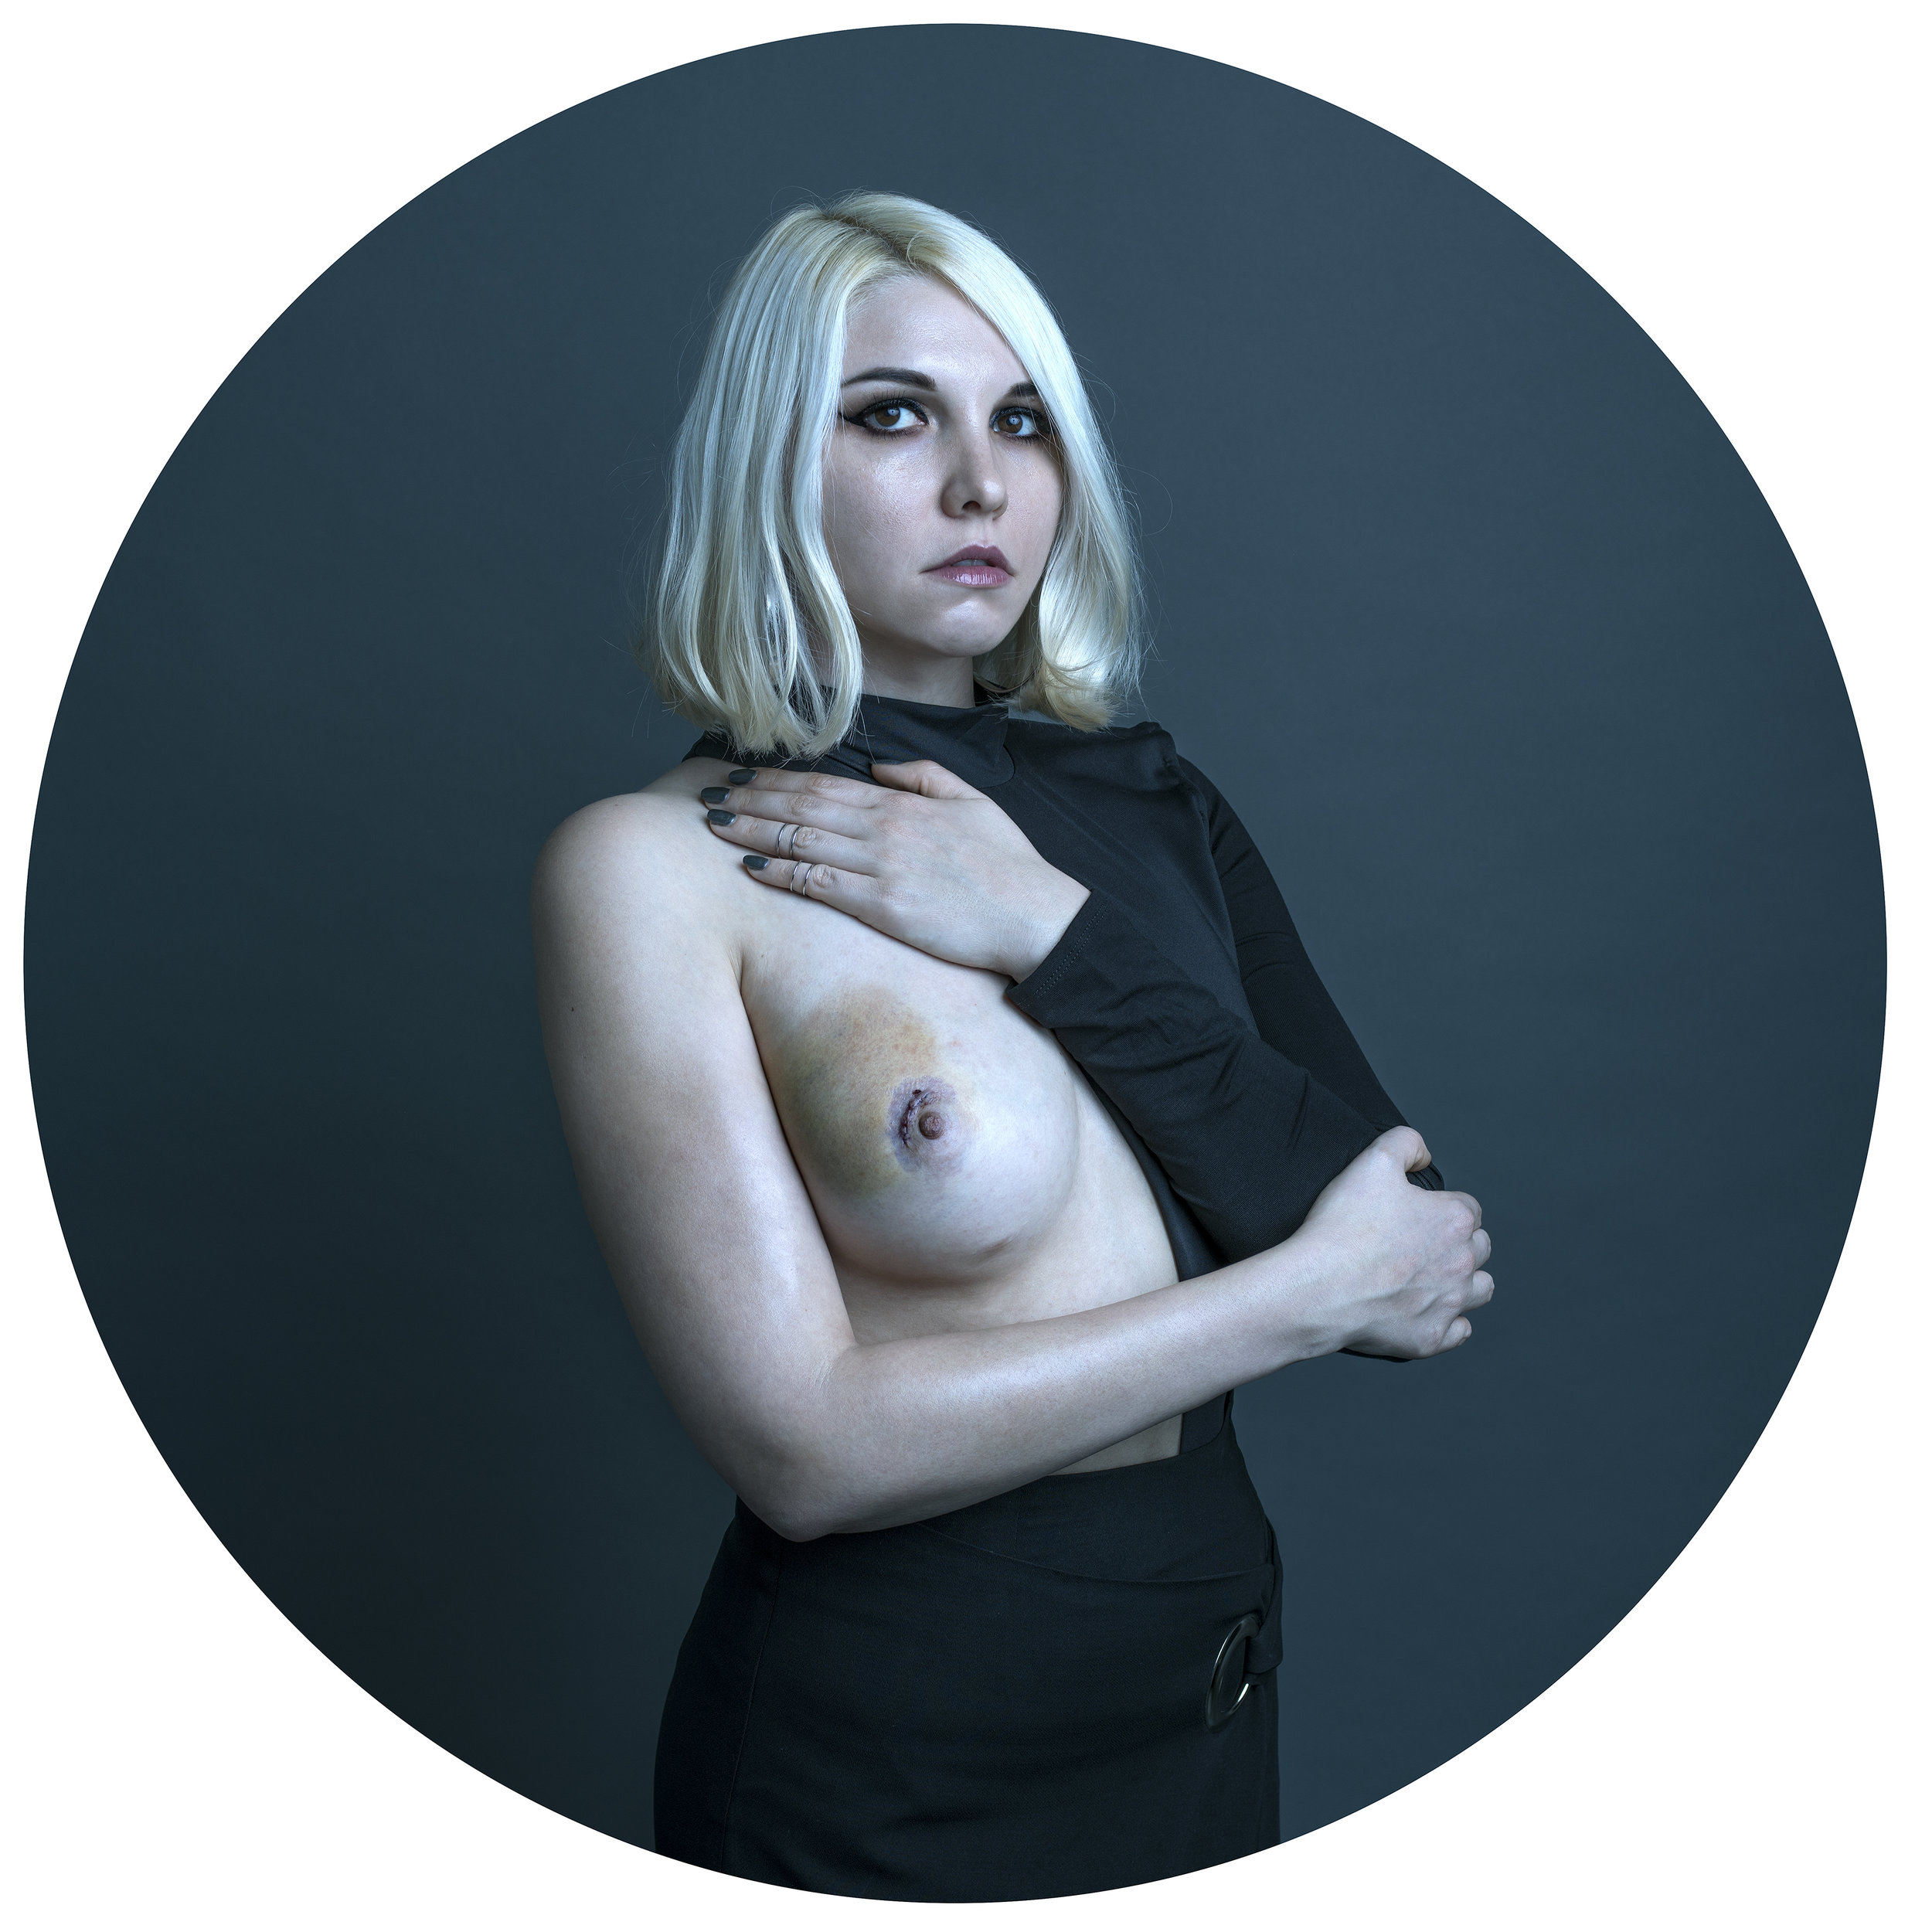 Patient , 2017 A self-portrait taken two days after Mills' second surgery to remove a benign fibroadenoma from her right breast.